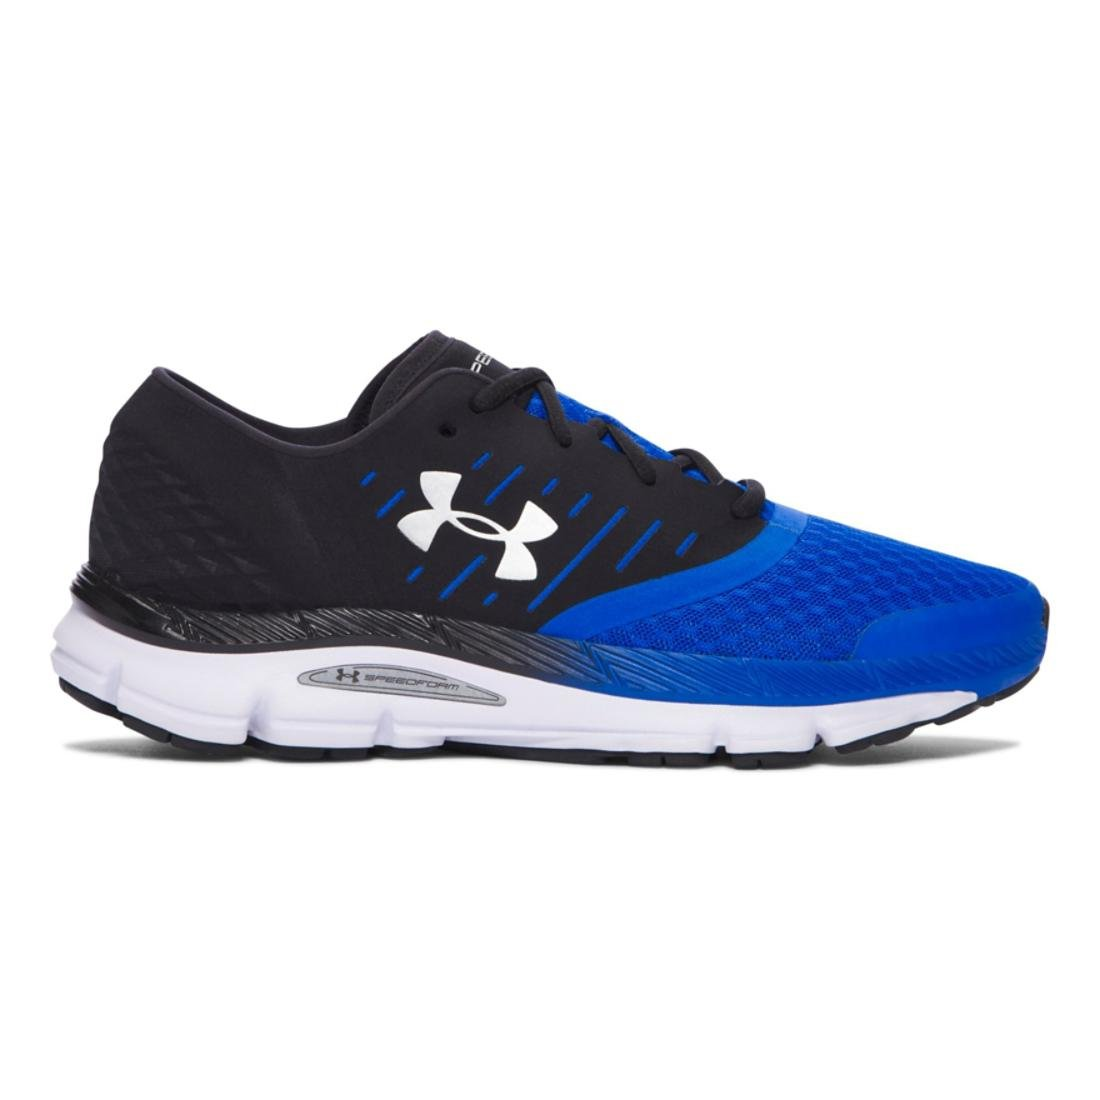 Under Armour Women's Speedform Intake Running Shoe, Black/Stealth Gray/White B01HYU59JA 12.5 D(M) US|Black/Ultra Blue/Mv